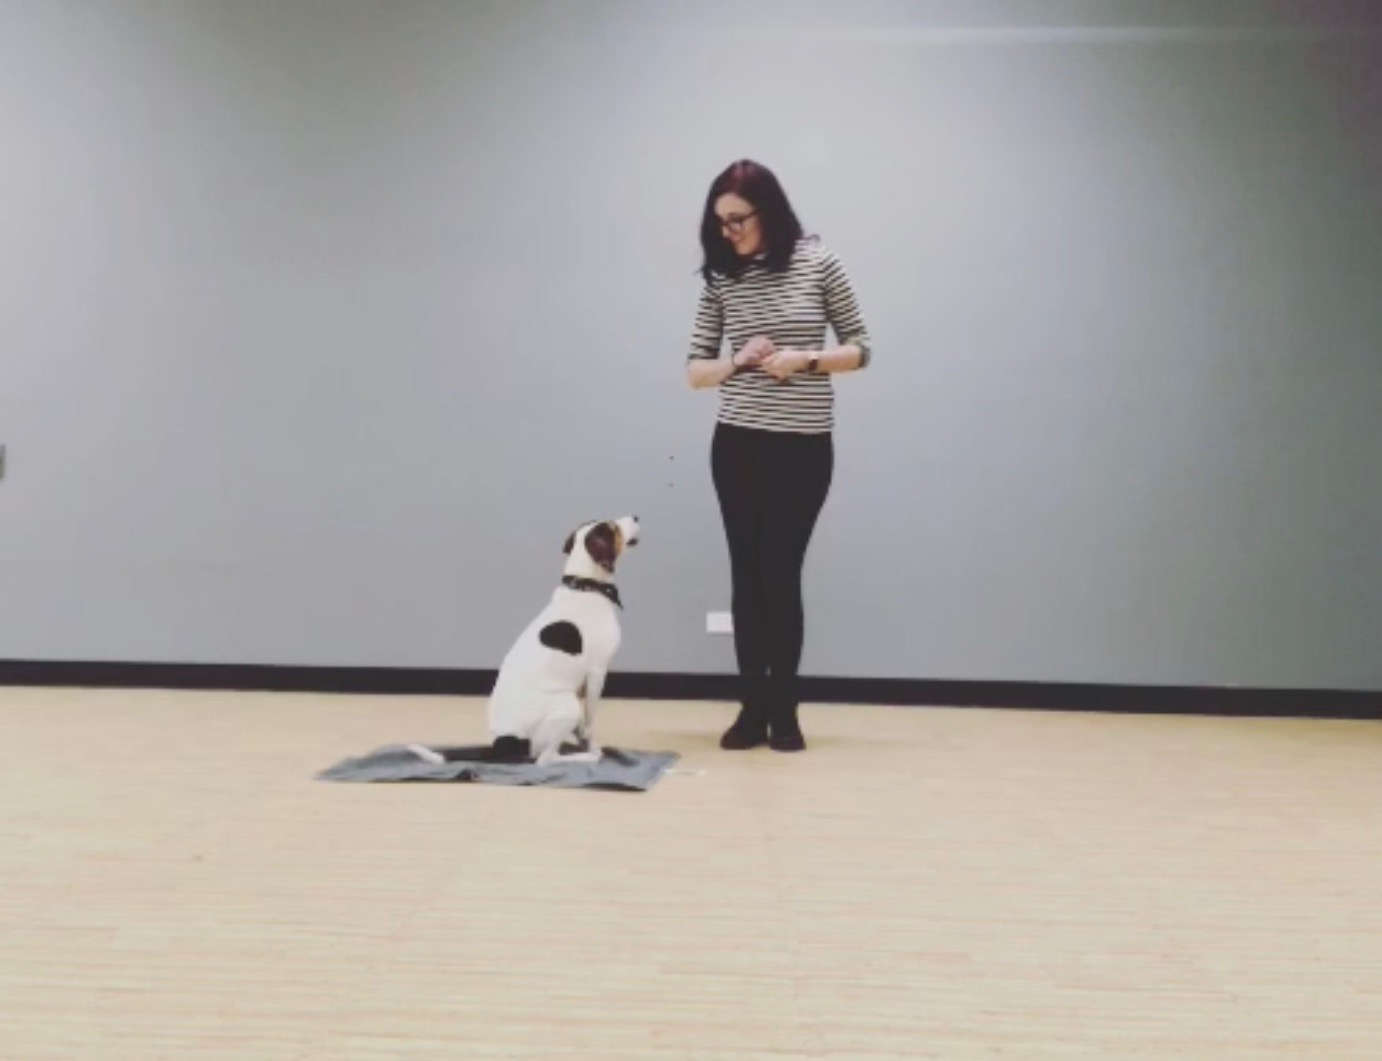 Sara Richter, CPDT-KA - Will be available at Pet People, 775 Waukegan Rd., Deerfield, IL 60015 from 5pm-7pm to answer questions or provide consultation regarding training and behavior services. Please feel free to drop by!